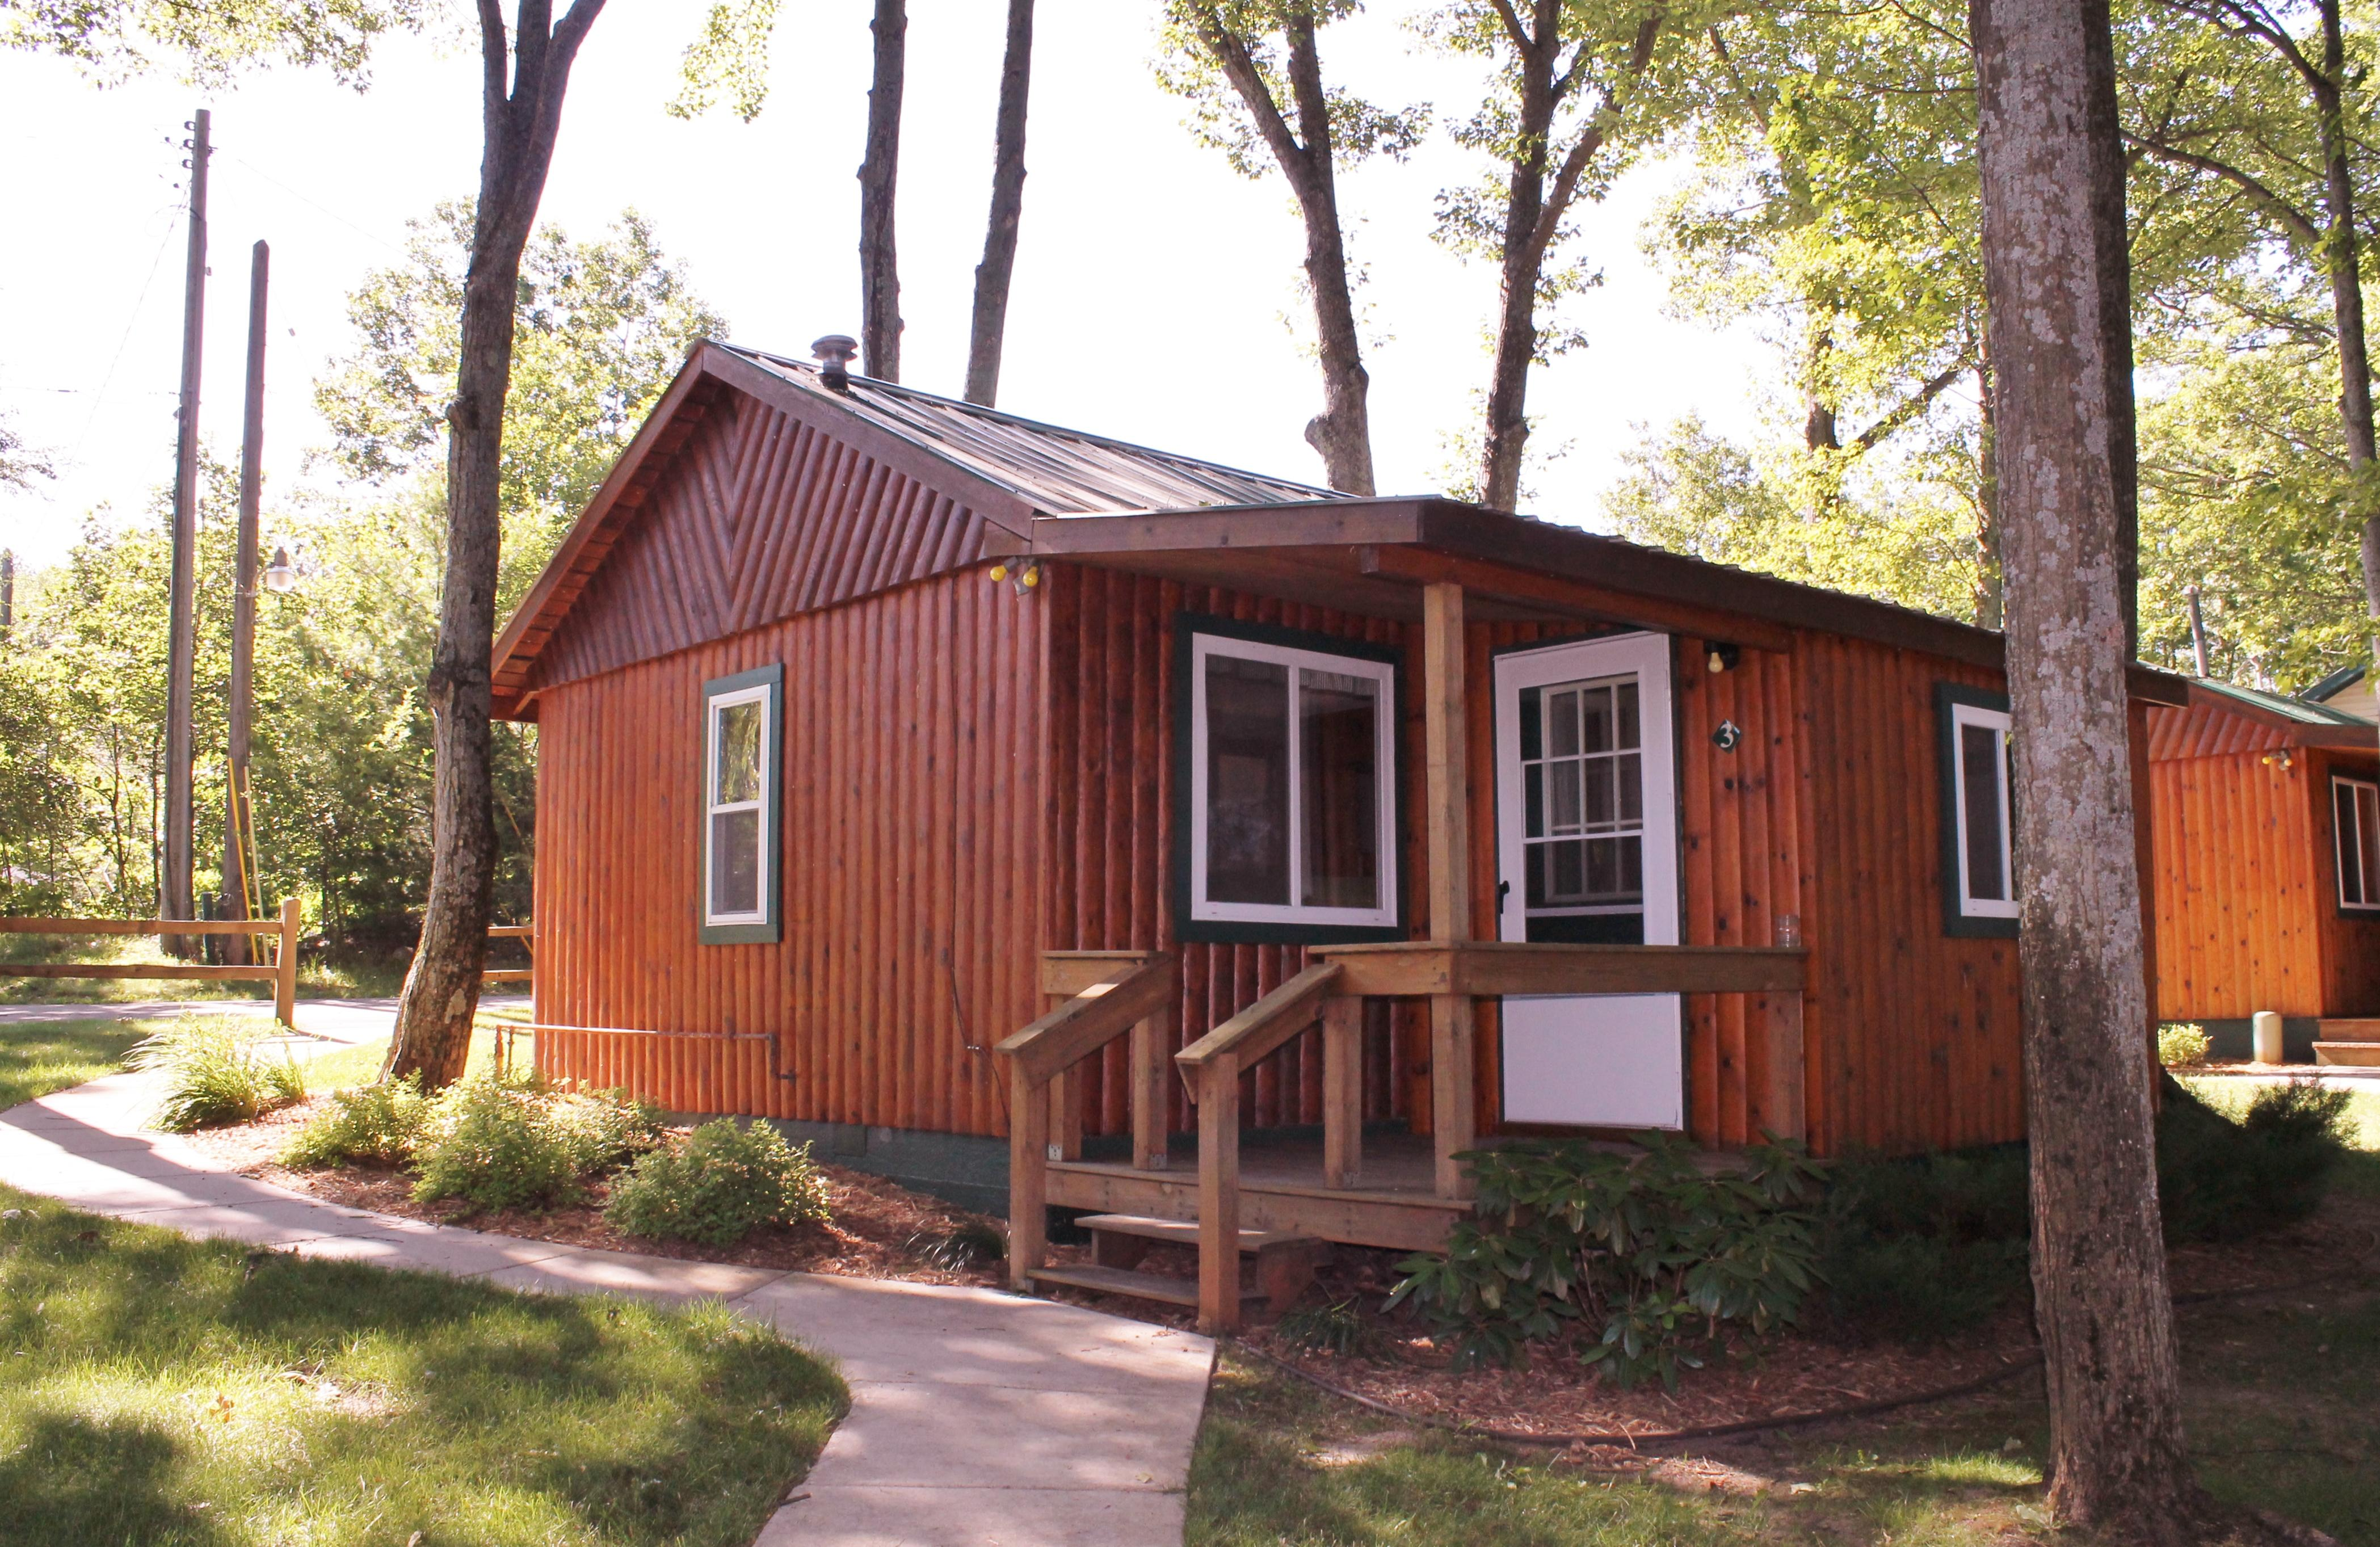 rentals guide vacation for cabins rent find finger homes geneva top travel expedia region vacationrentals lakes